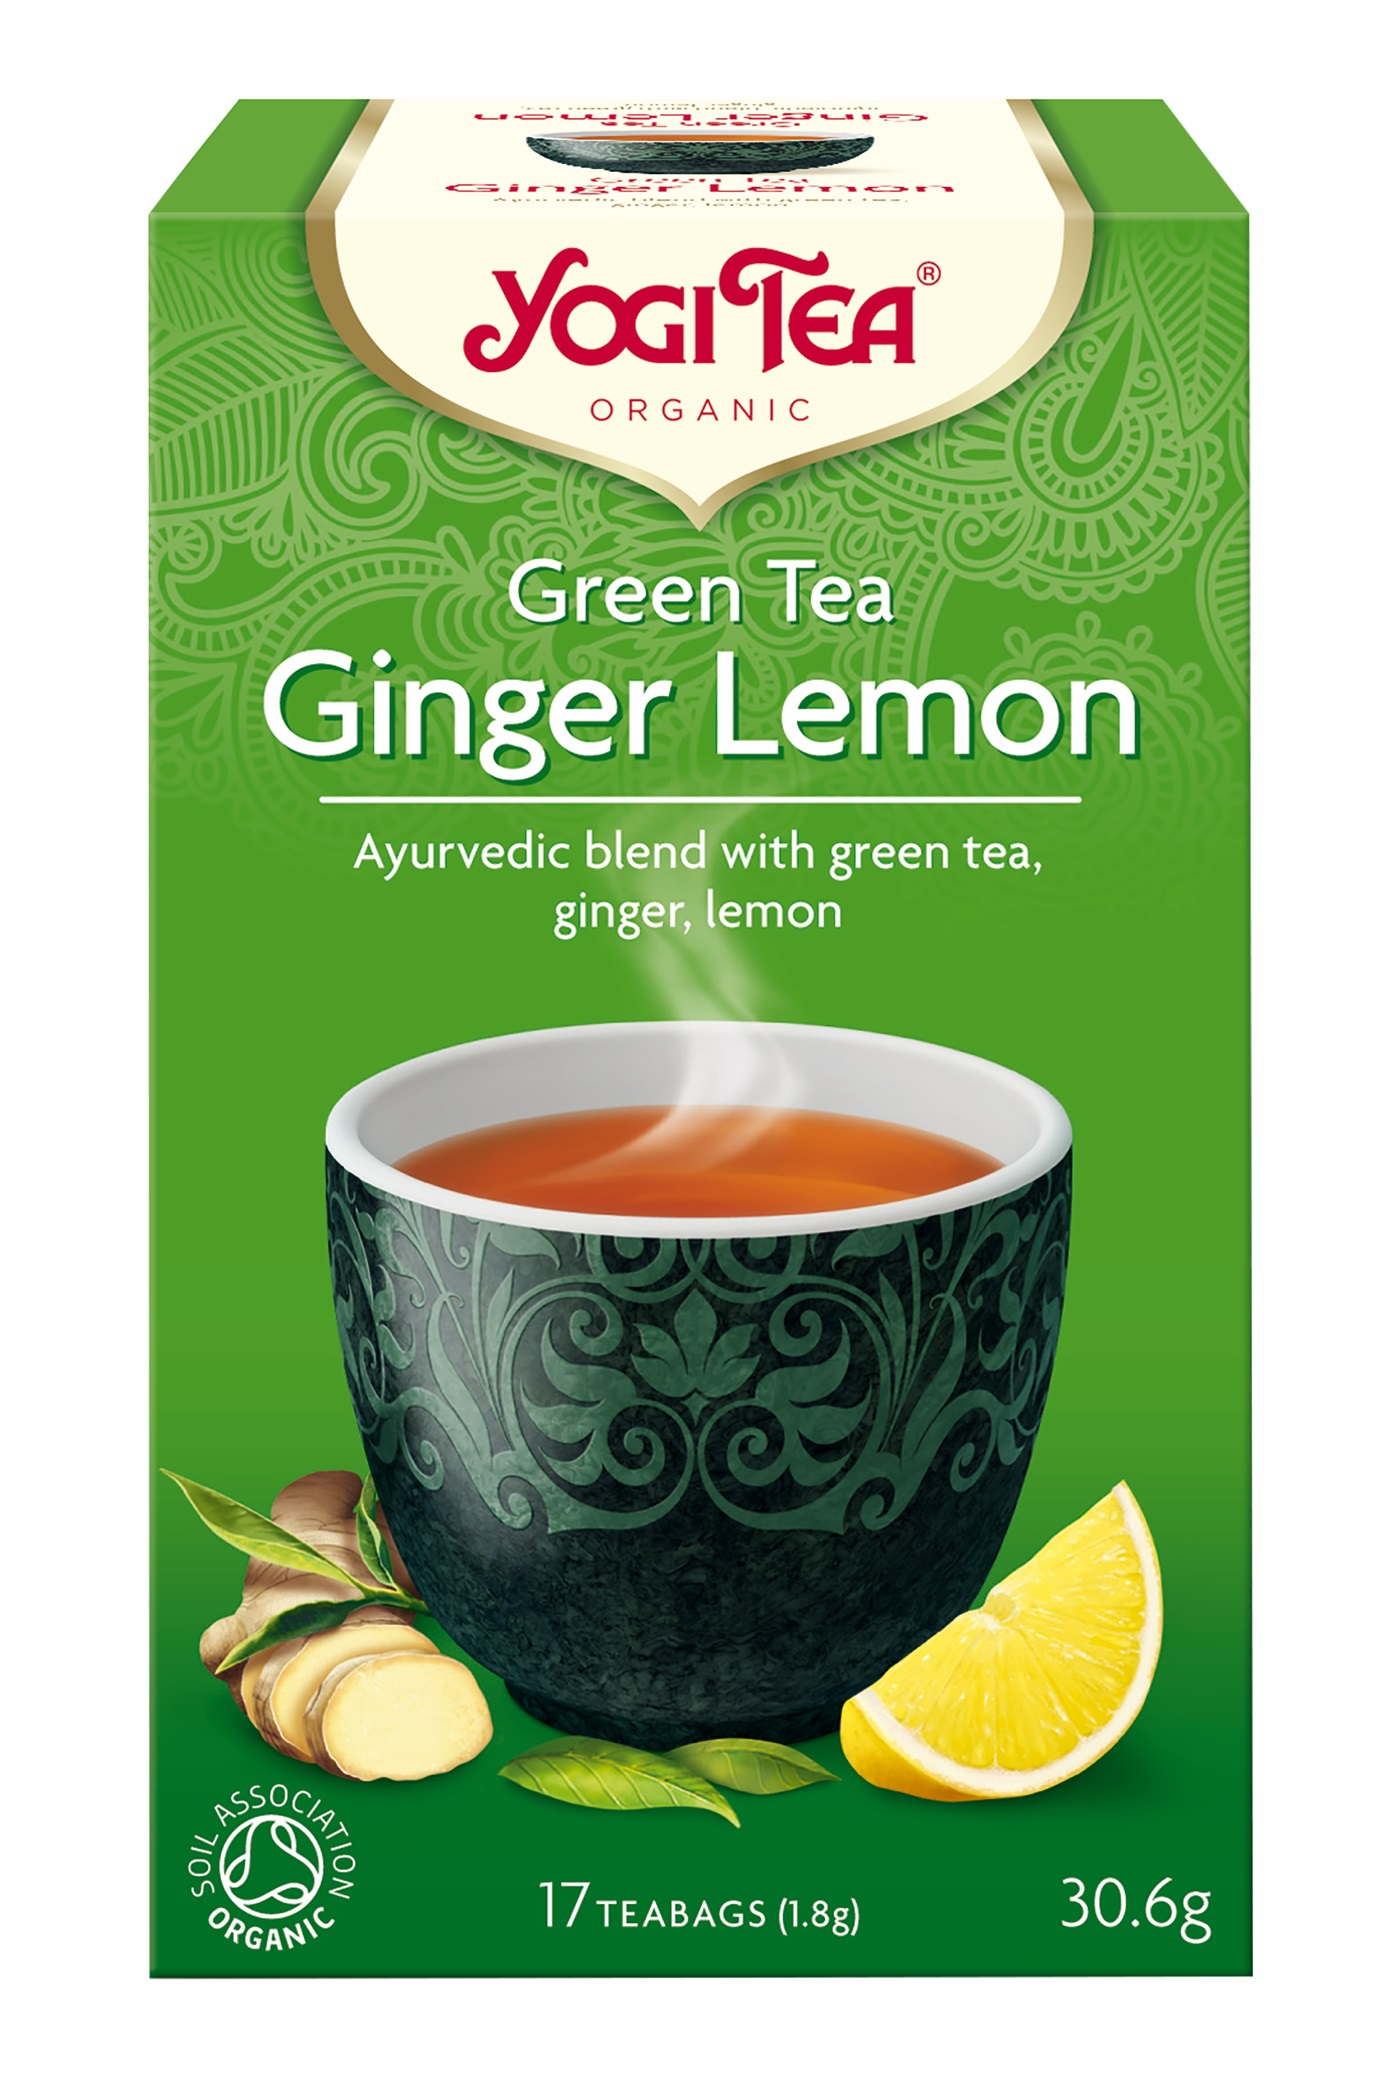 Yogi Tea Green Tea Ginger Lemon Te - 17 Brev